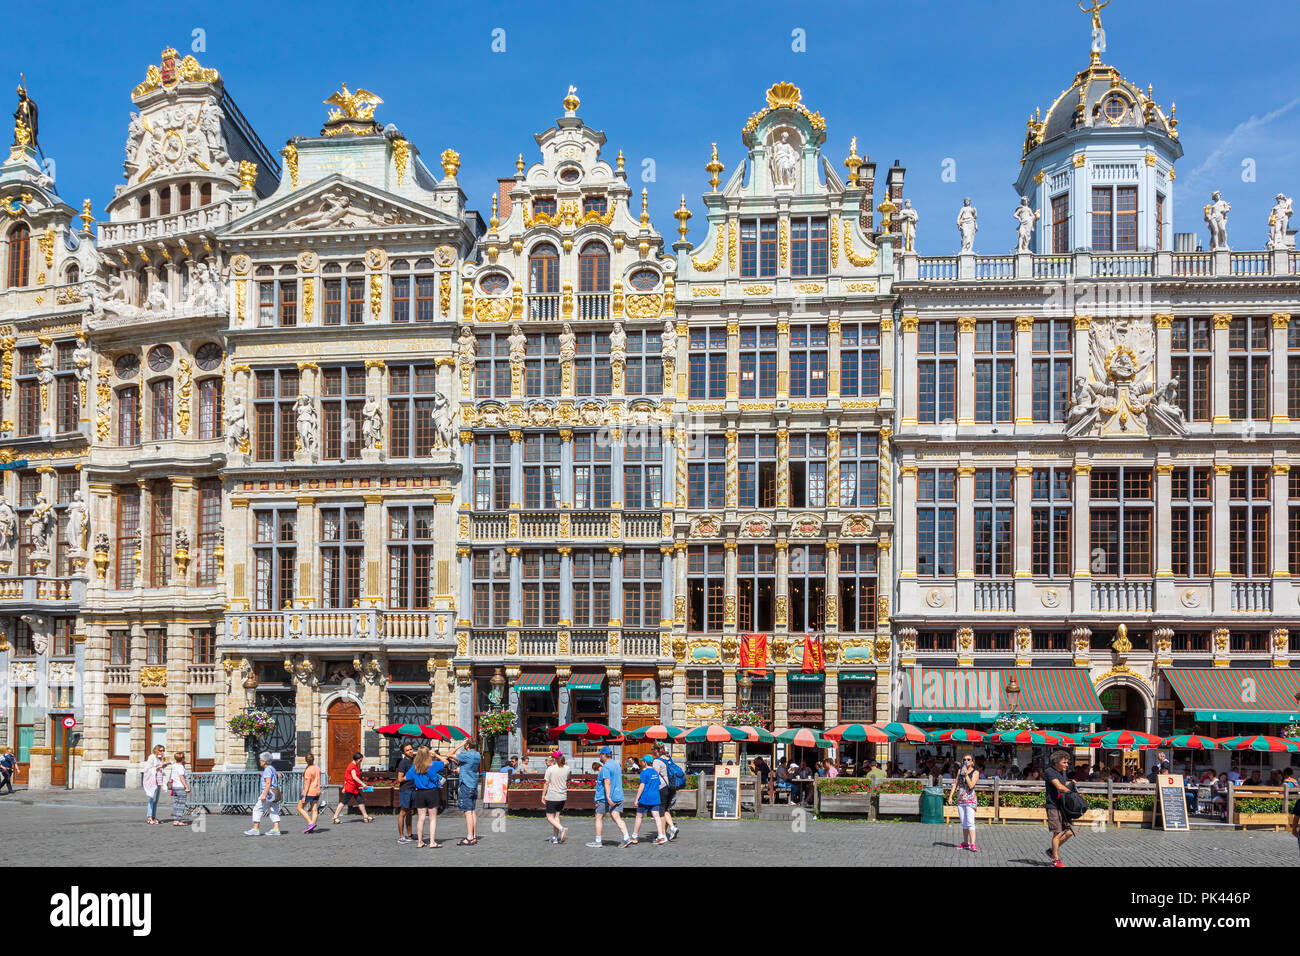 15th century architecture in Grand Place, Brussels, a UNESCO World Heritage site, Brussels, Belgium Stock Photo